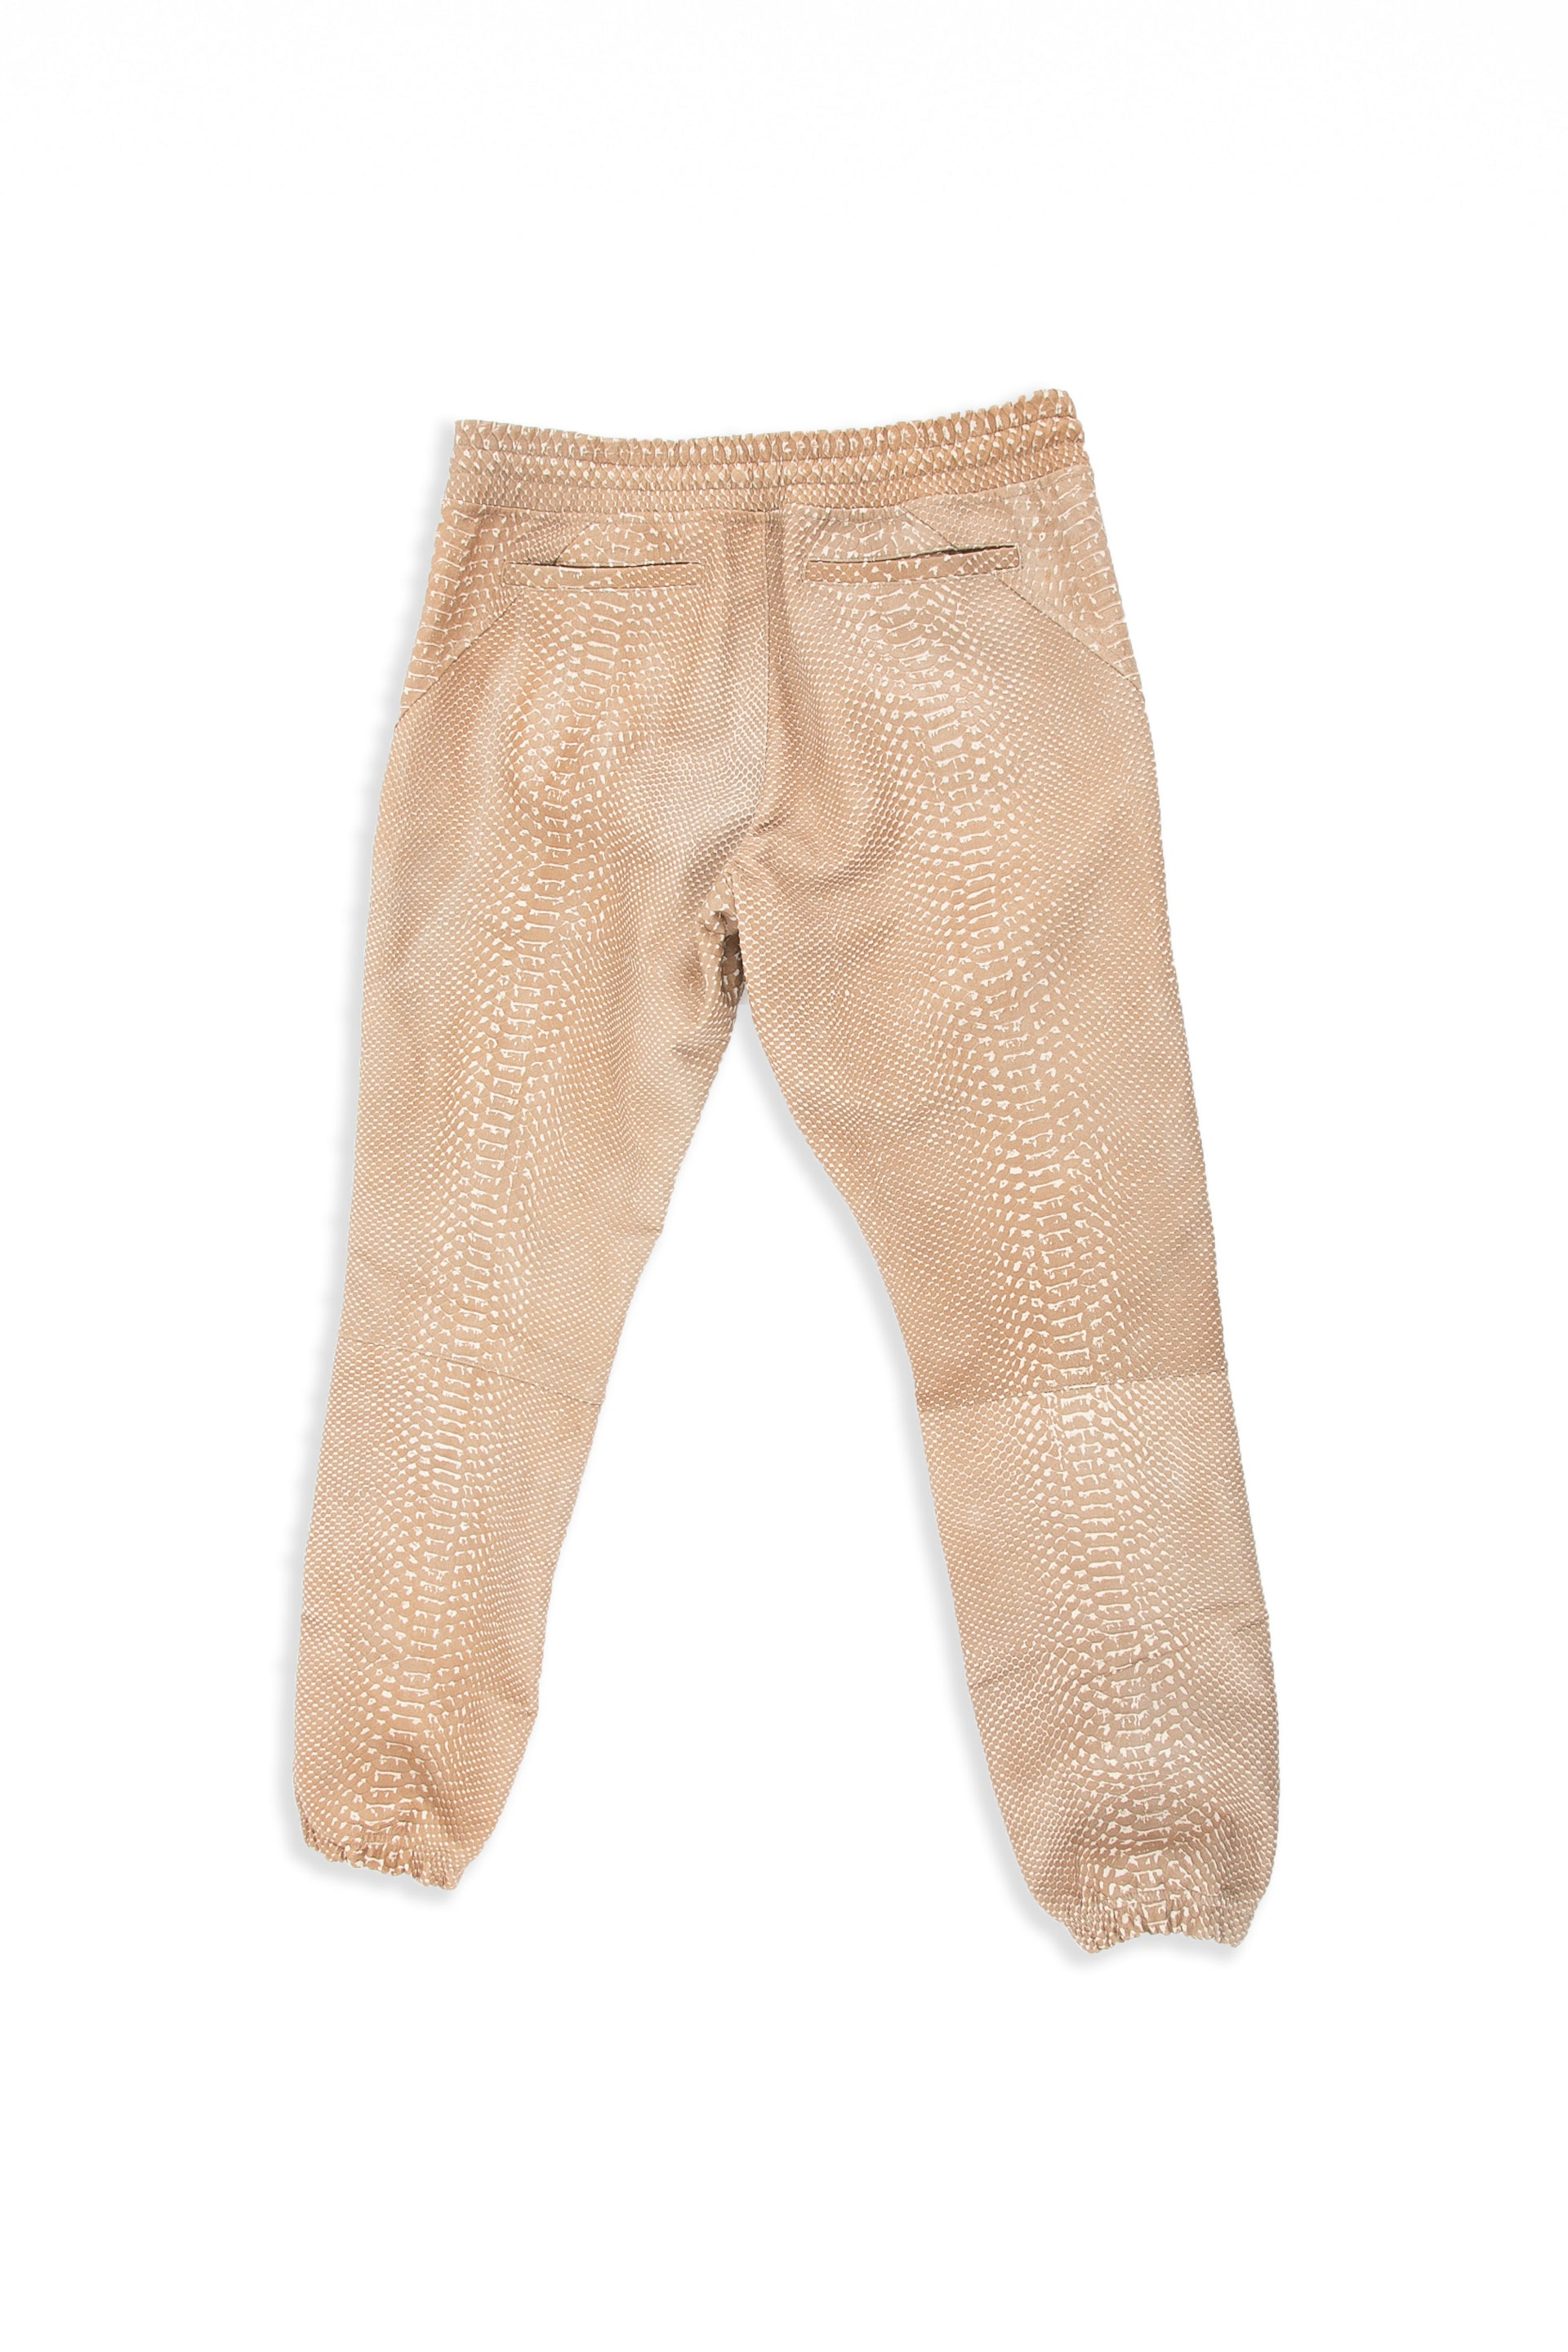 Backside of Snakeskin Jogger in Tan